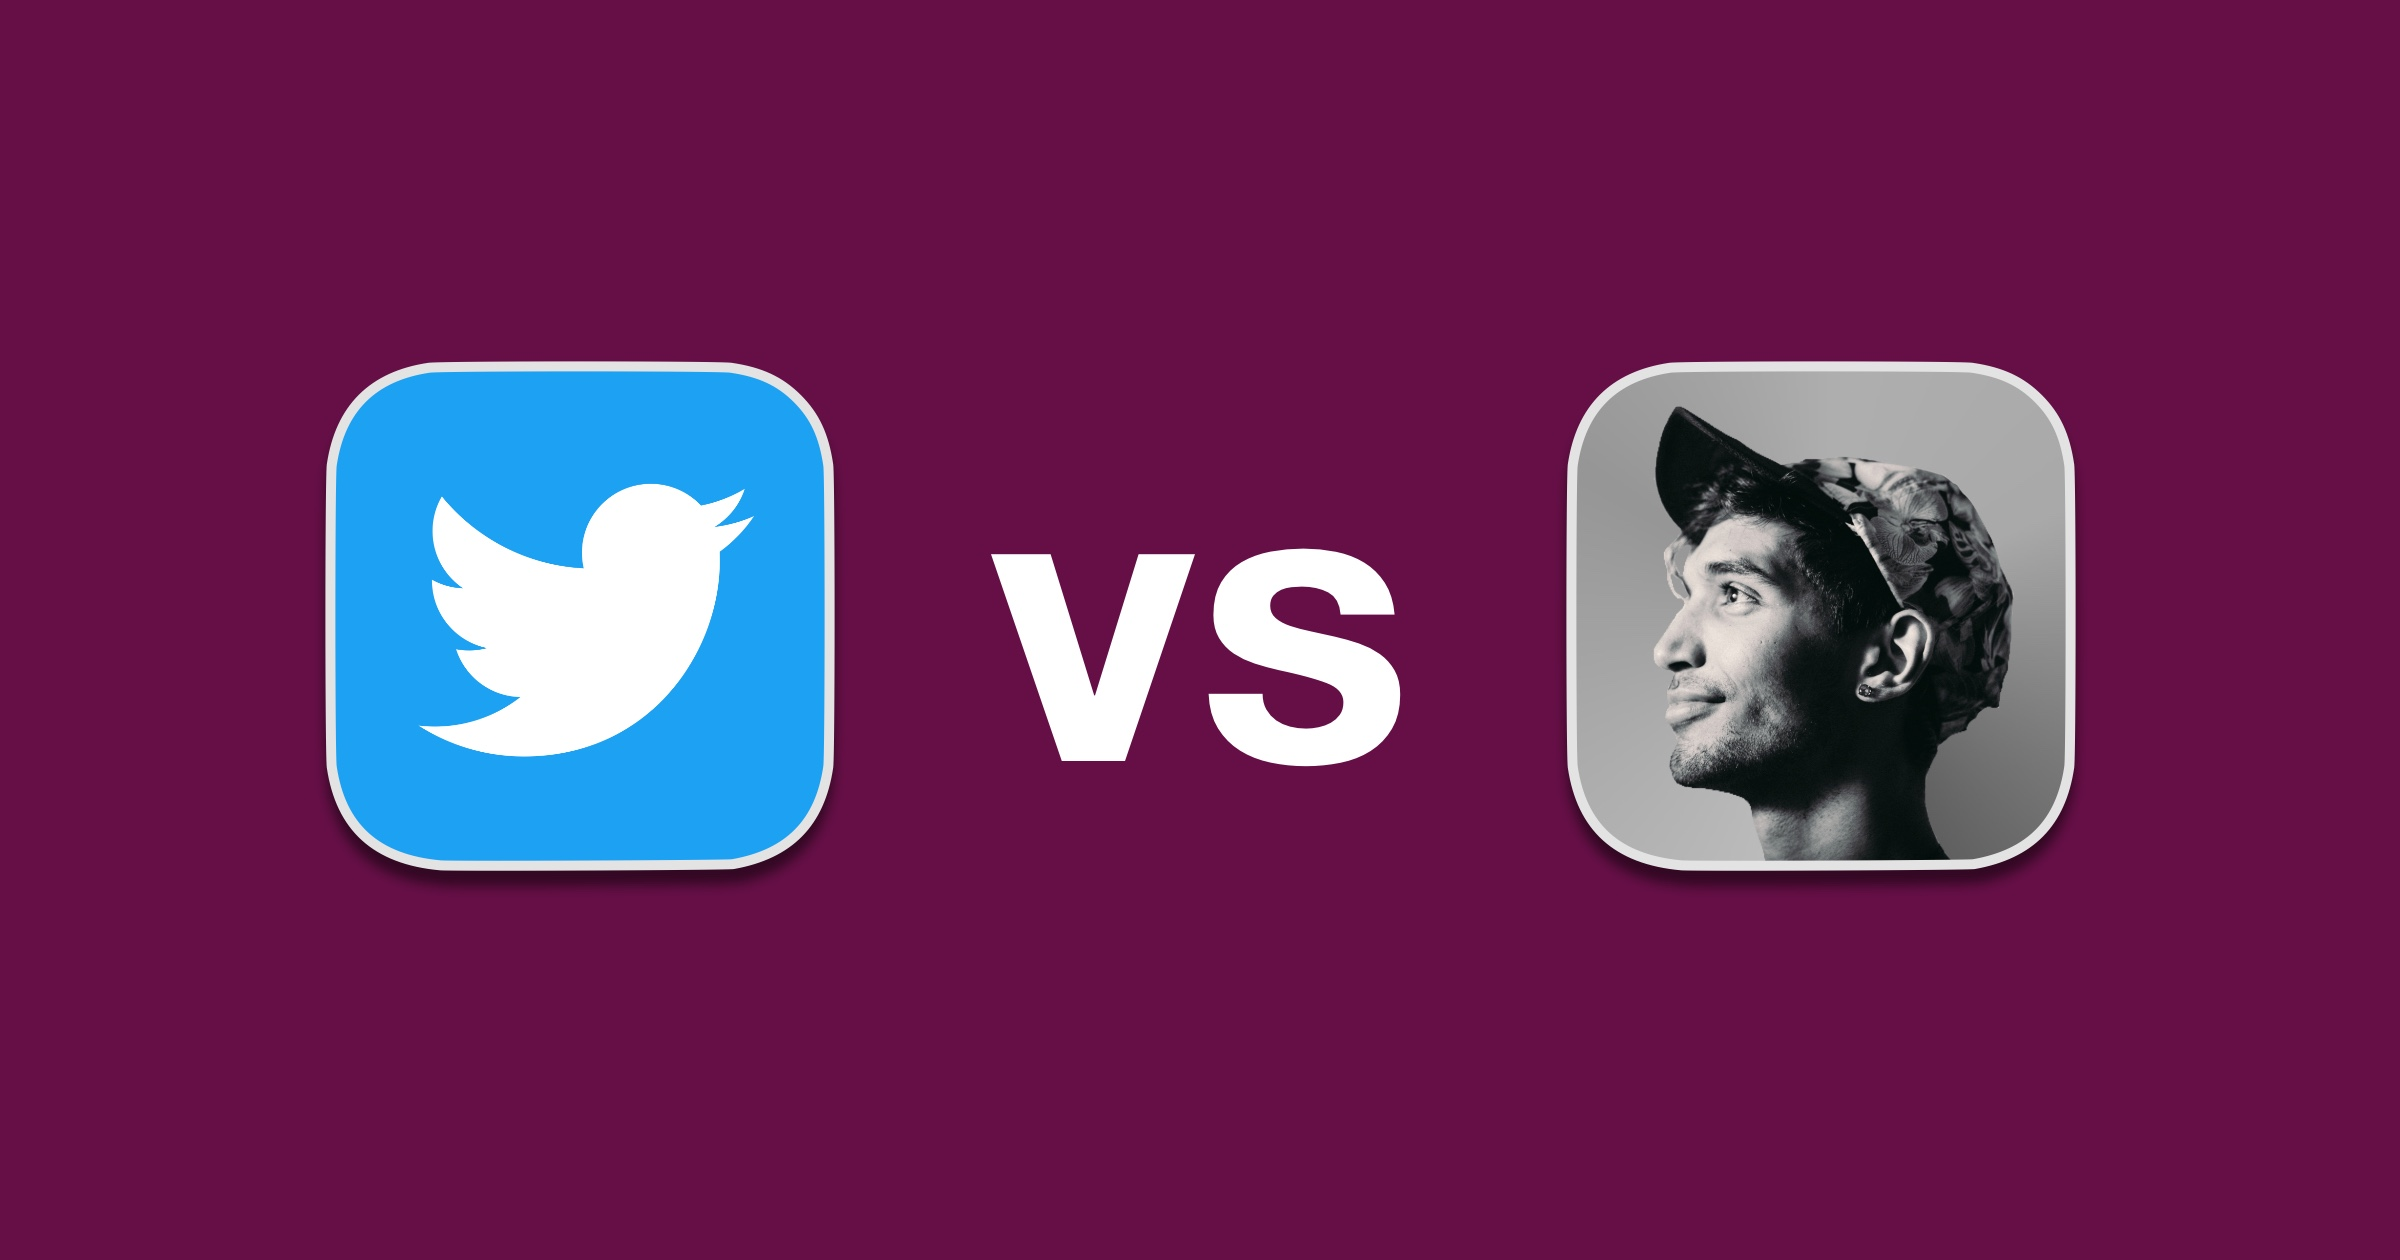 Twitter versus clubhouse